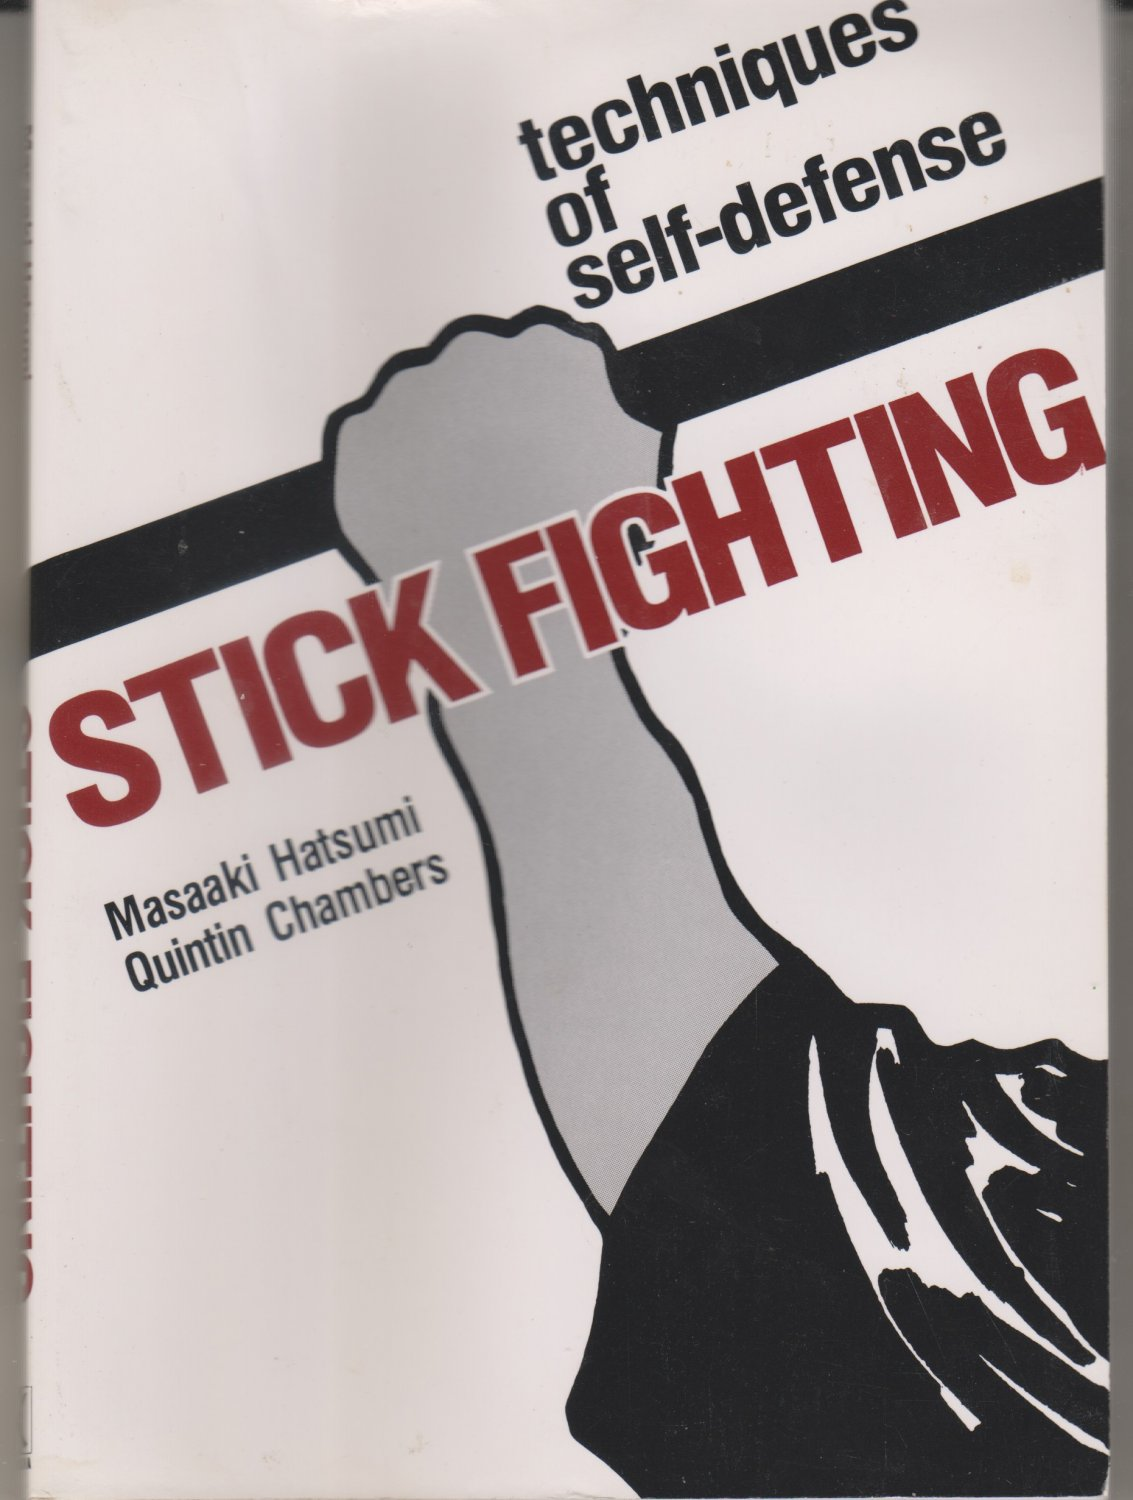 stick fighting techniques of self defense pdf